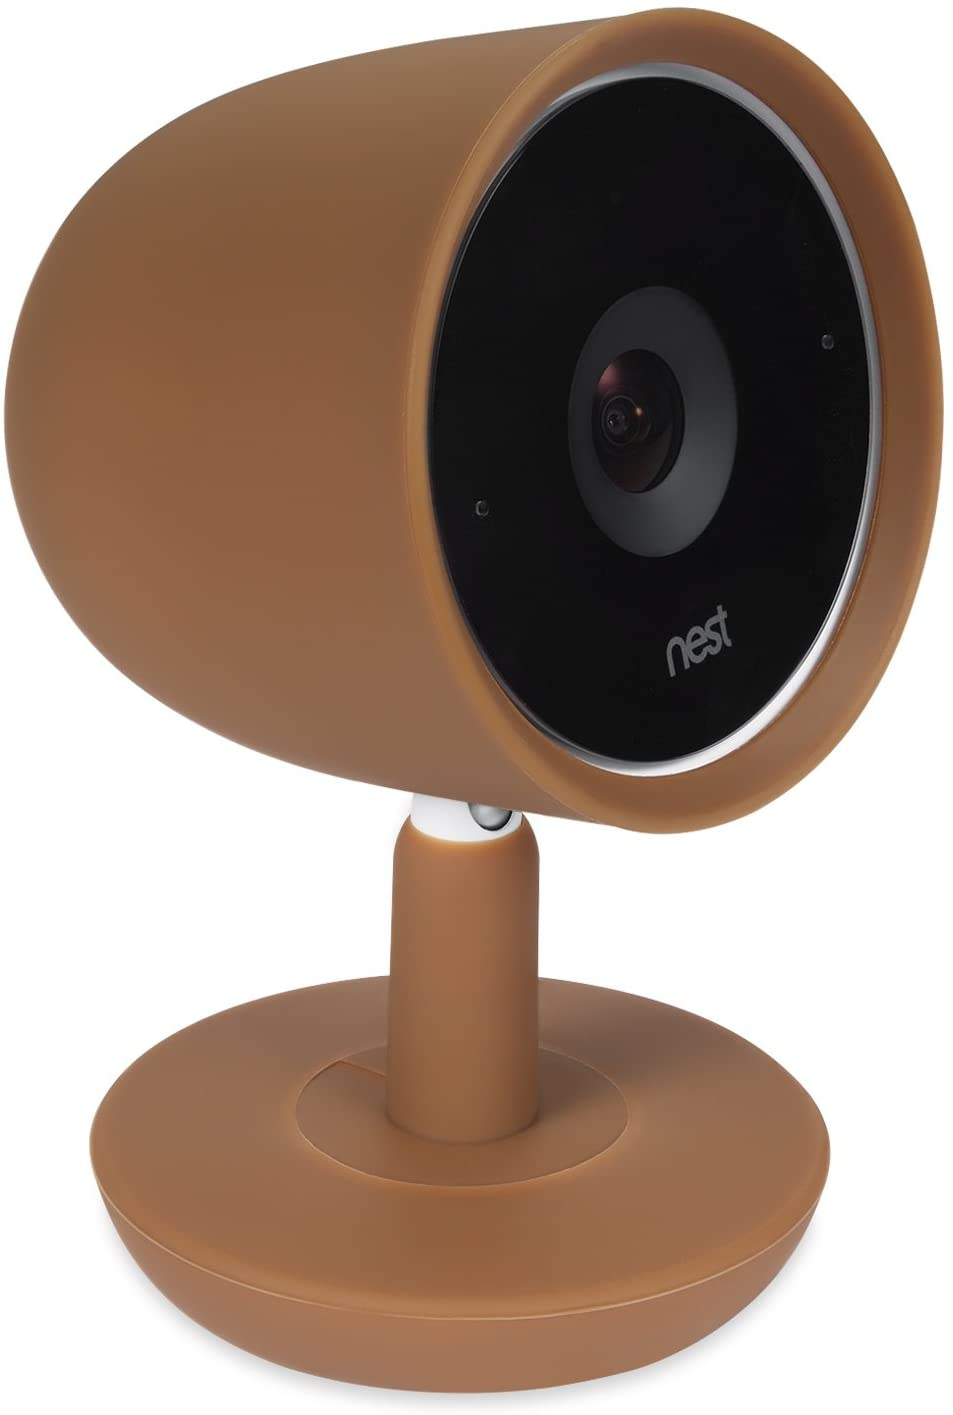 Colorful Silicone Skins Compatible with Nest Cam IQ Security Camera; Camouflage and Accessorize Your Nest Cam IQ Plus Camera in Your Favorite Colors – by Wasserstein (1 Pack, Brown)